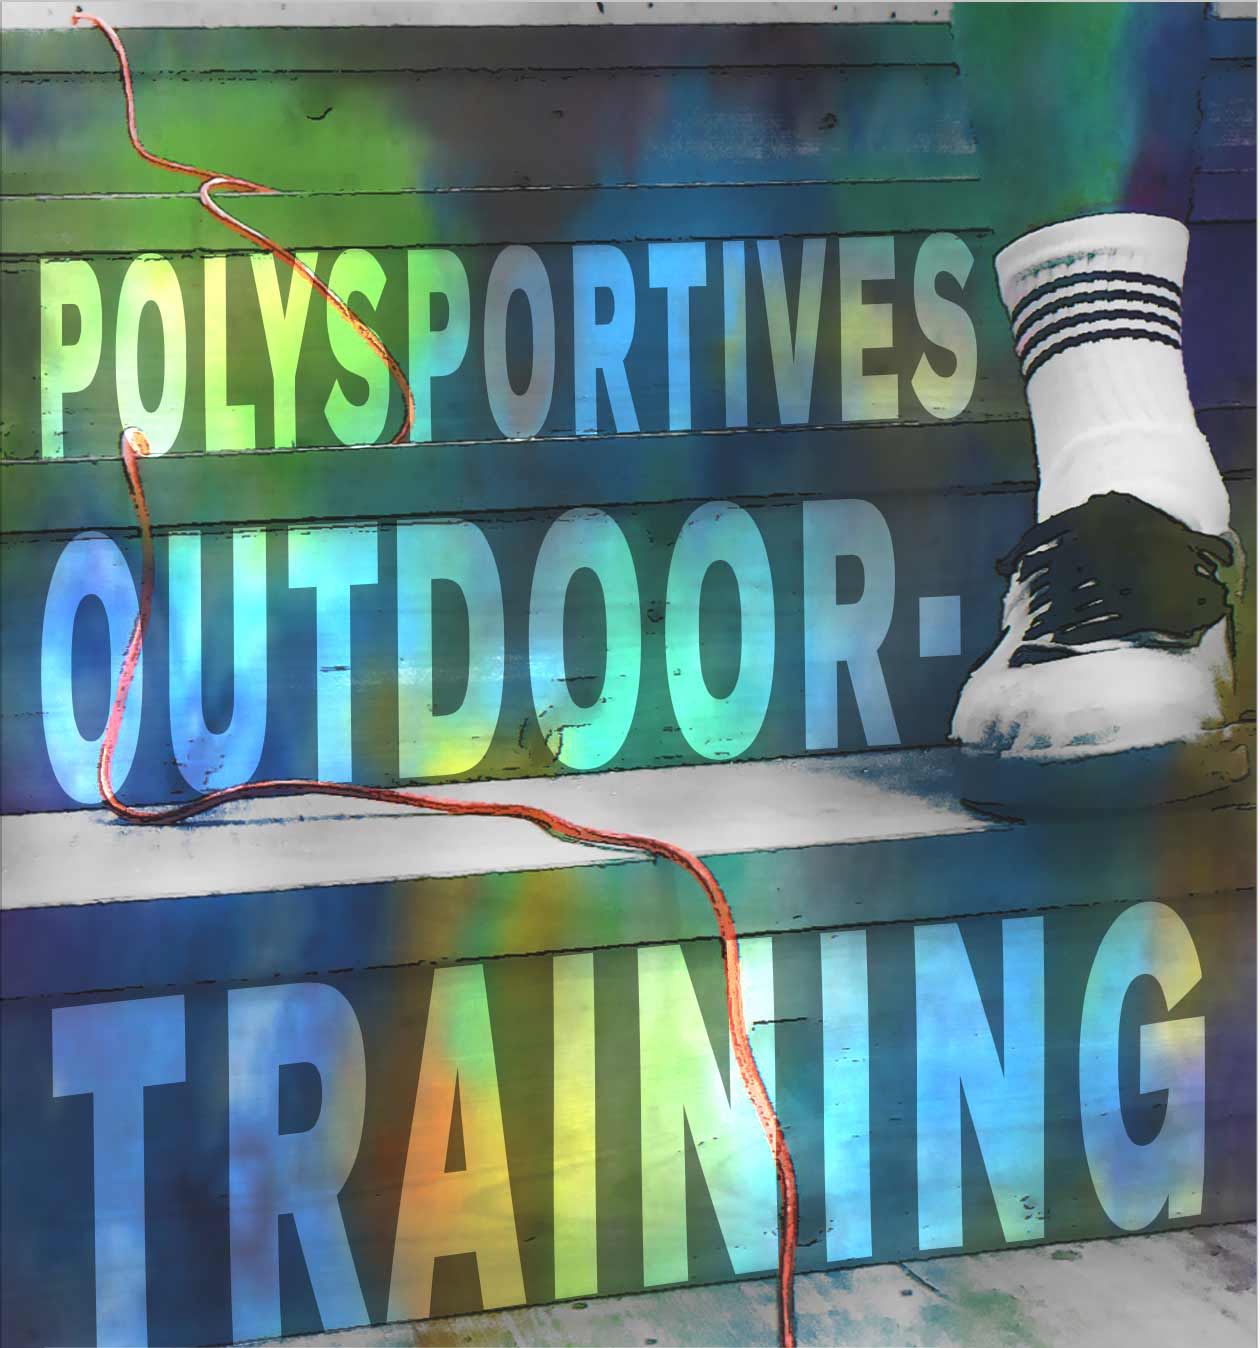 Alex Wydler Training – Polysportives Outdoor Training